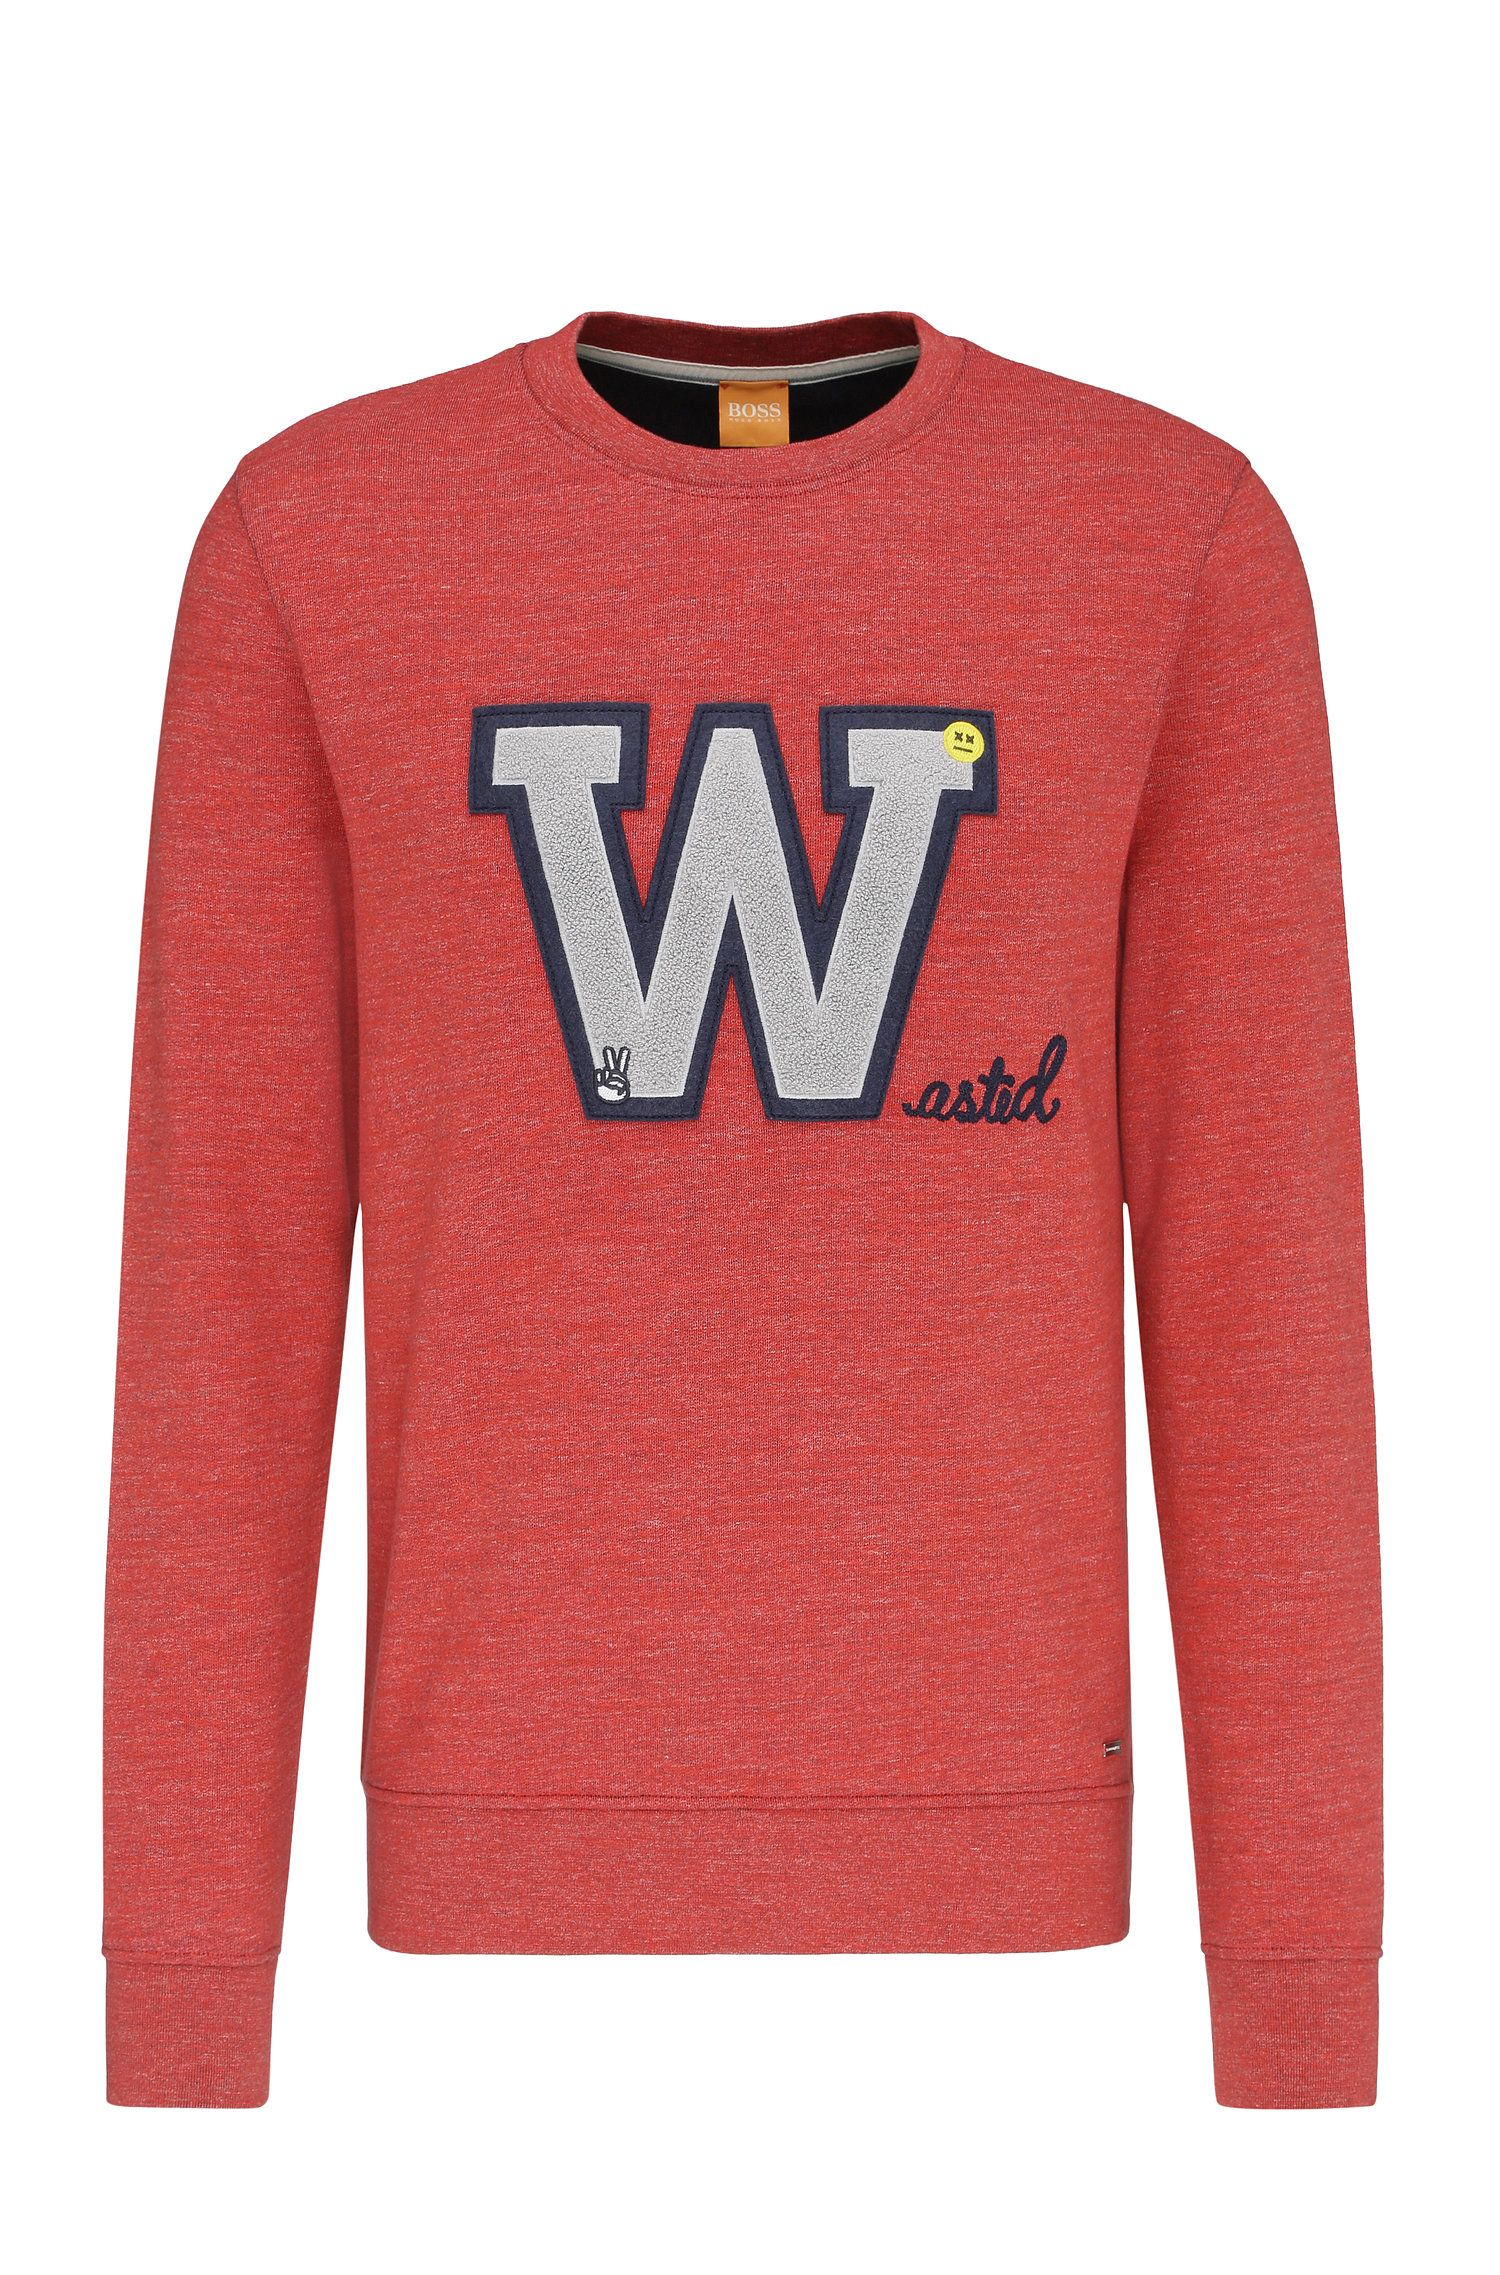 'Wariety' | Cotton Applique Sweatshirt